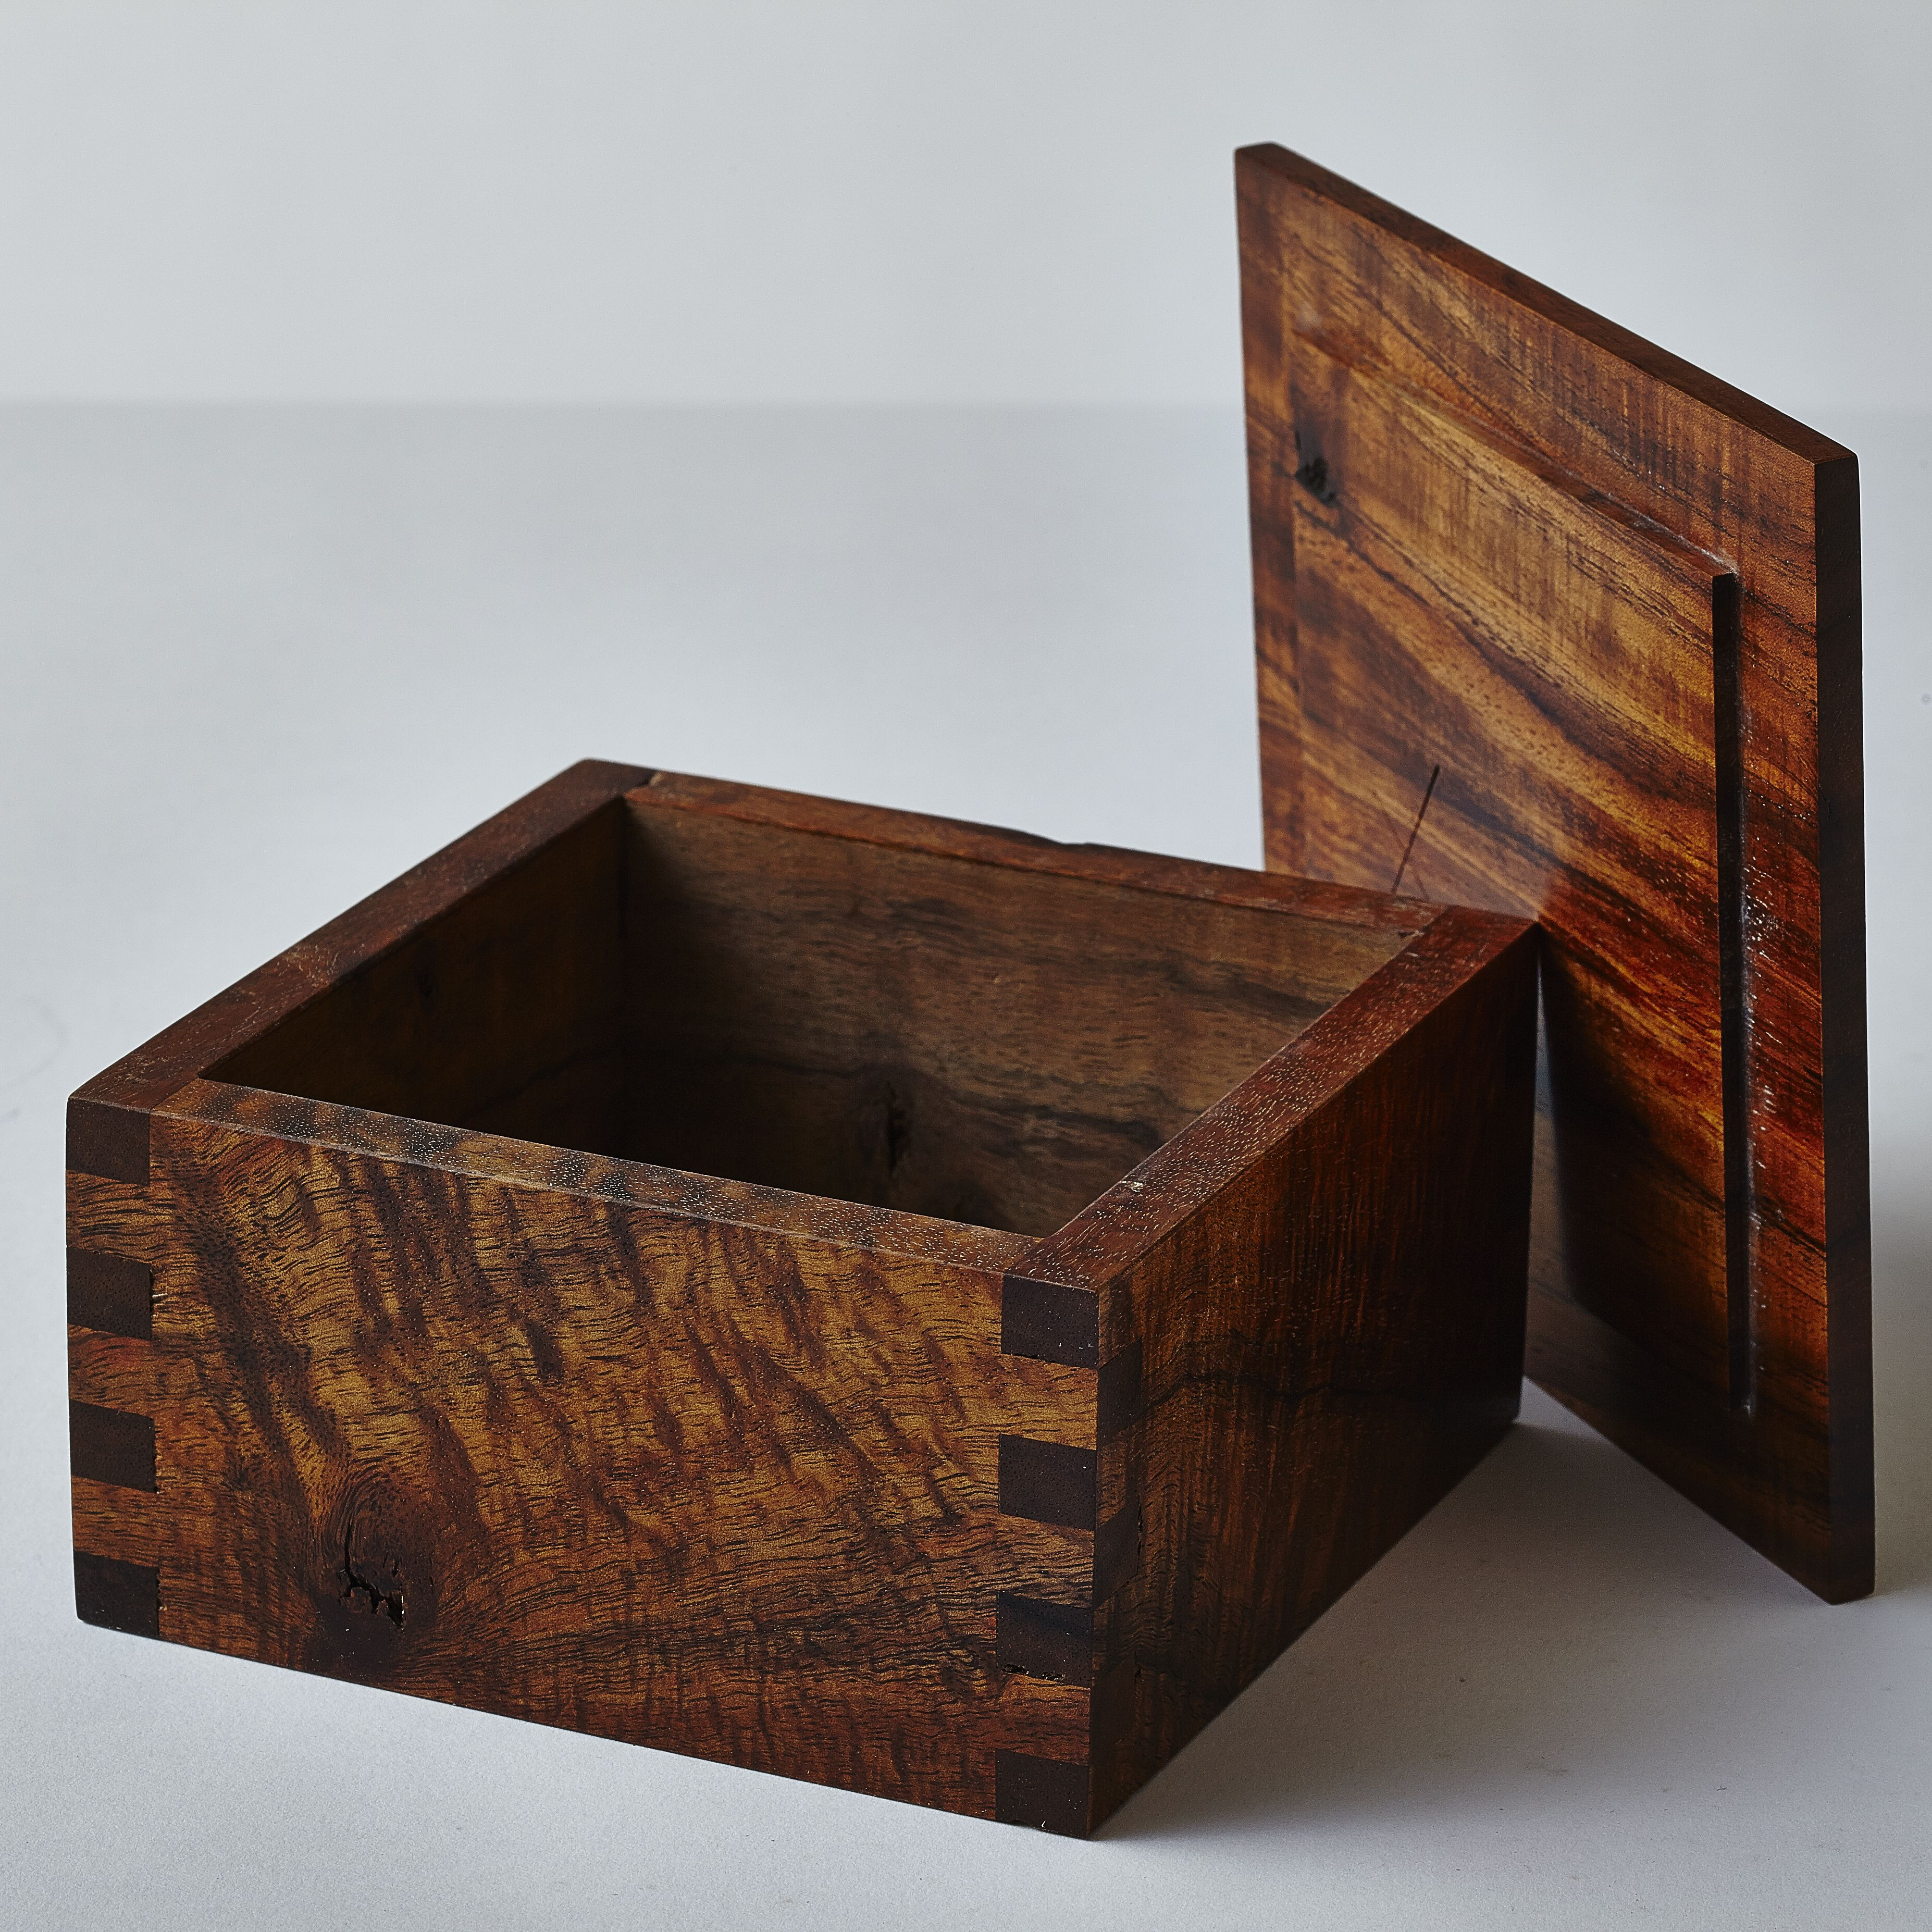 koa box with lid woodworking project inspiration pinterest box woodworking and wood boxes. Black Bedroom Furniture Sets. Home Design Ideas